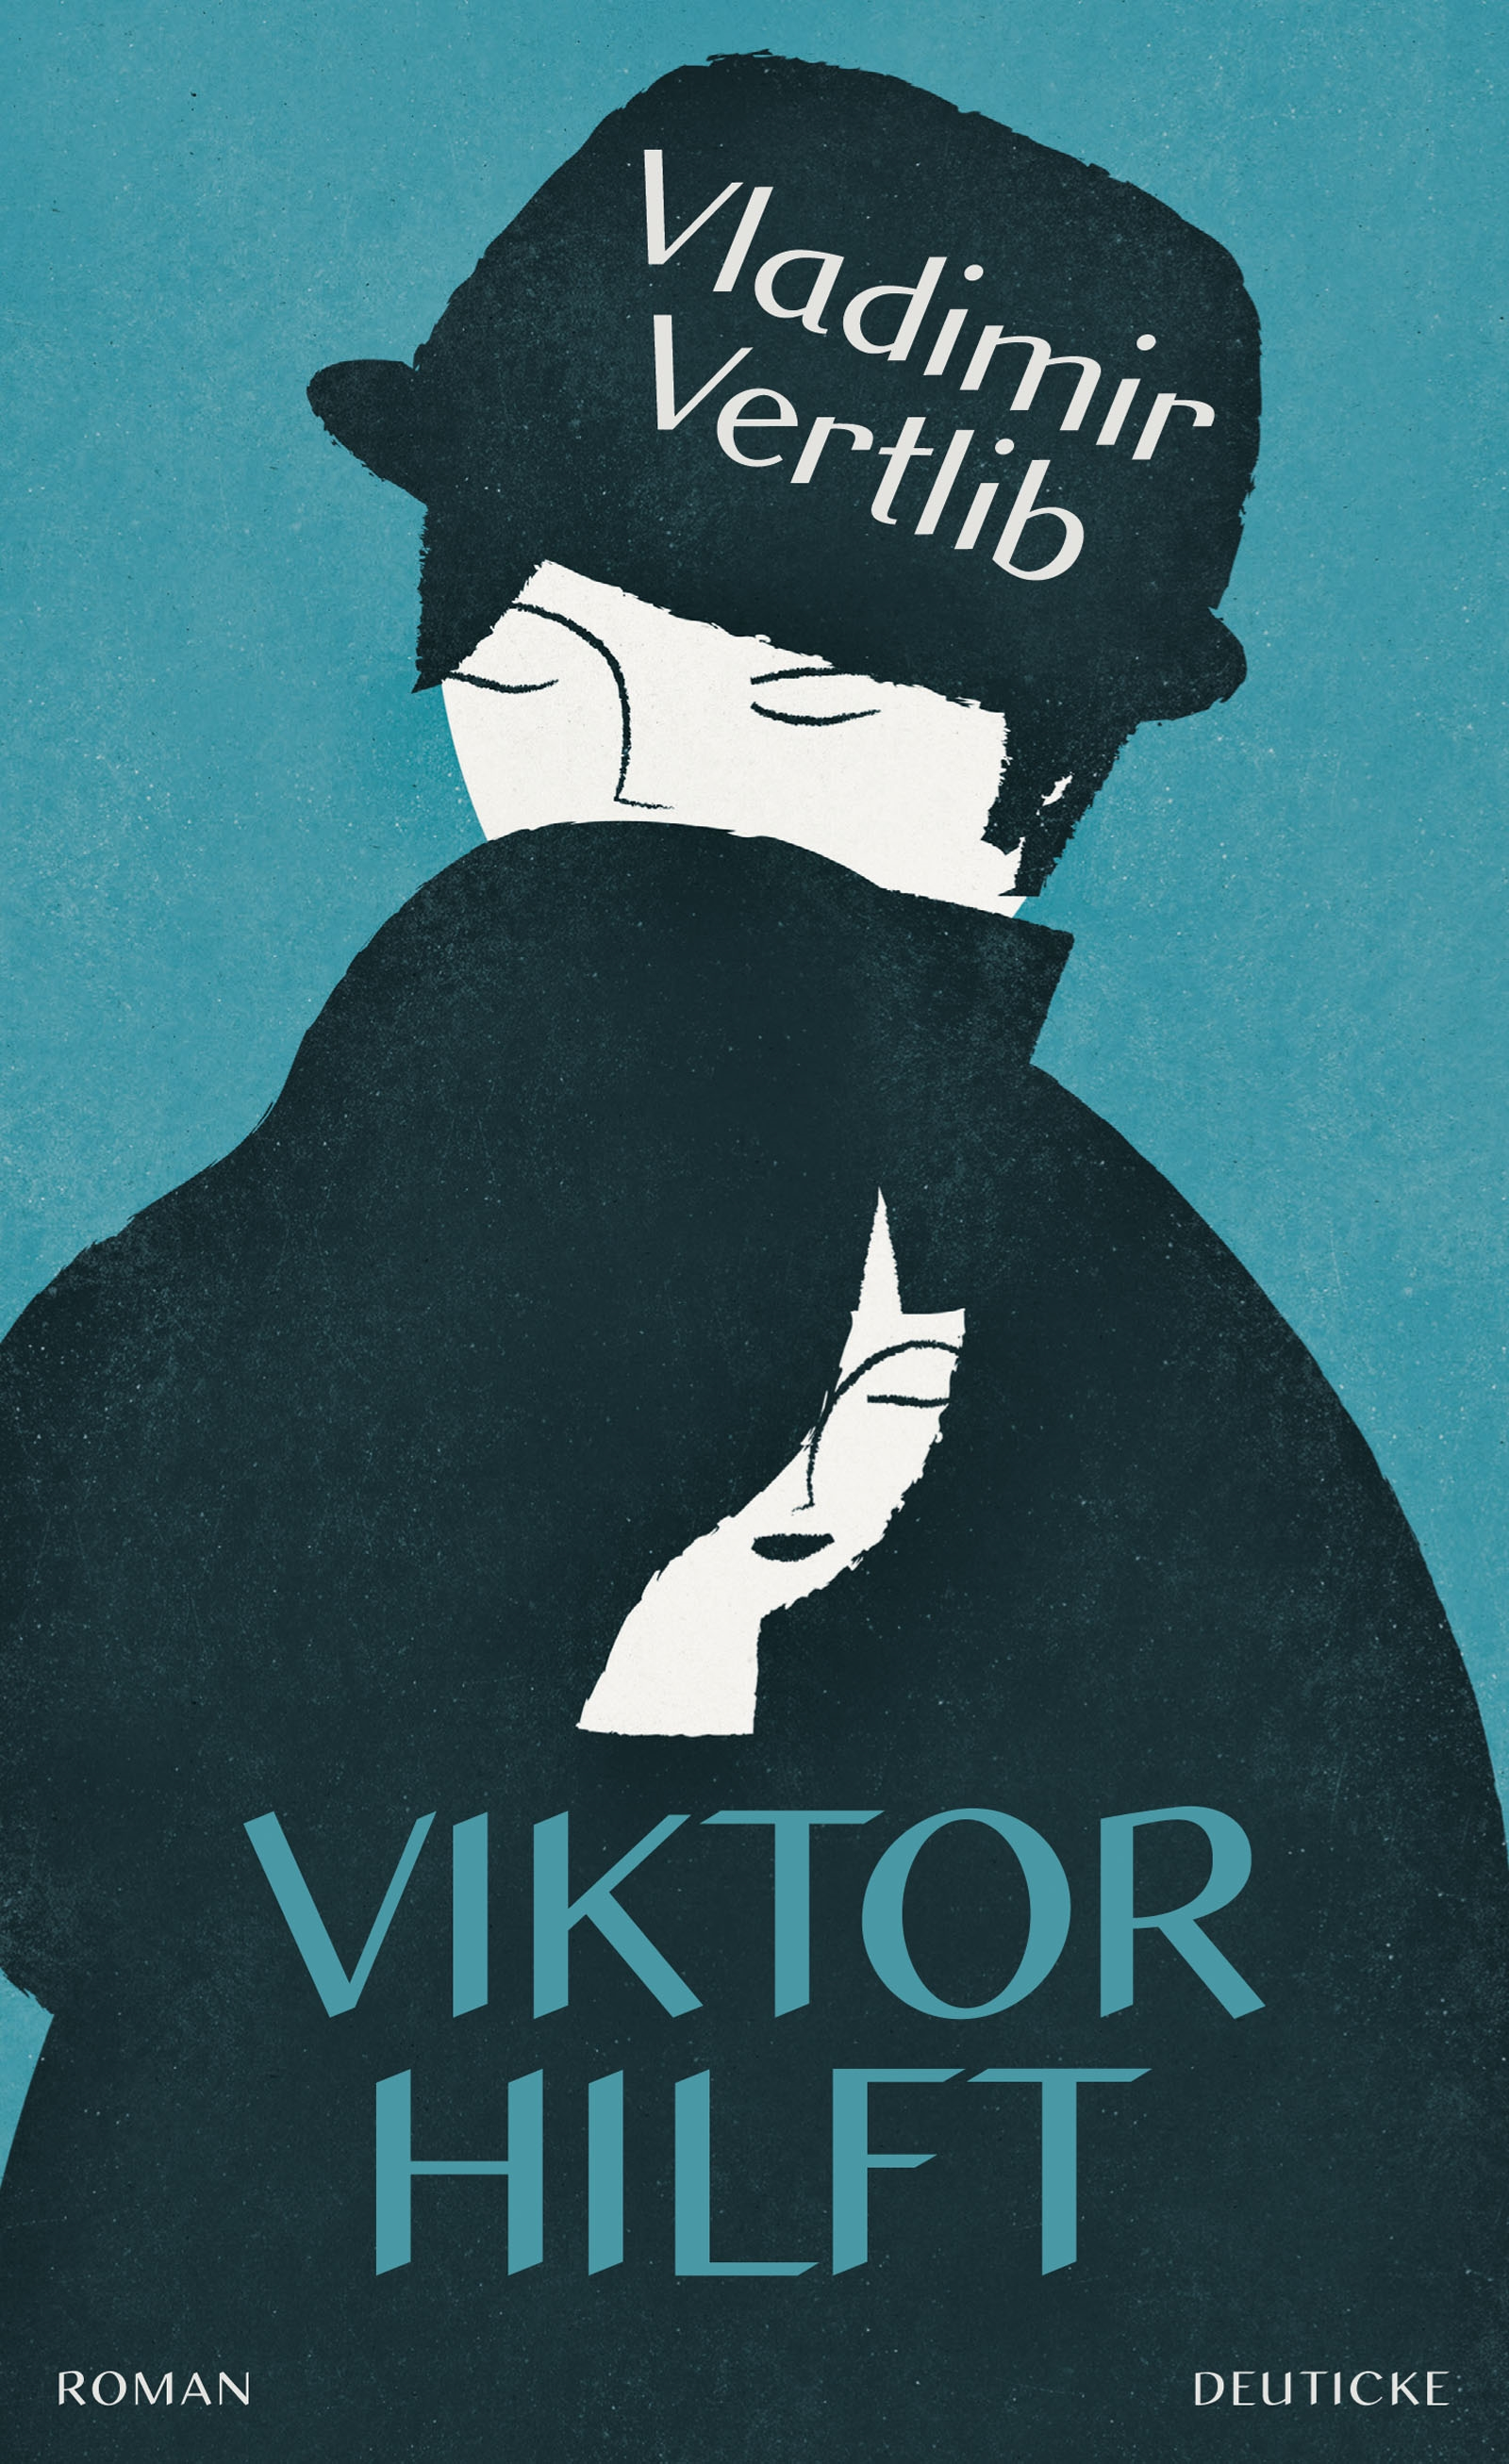 Viktor Helps